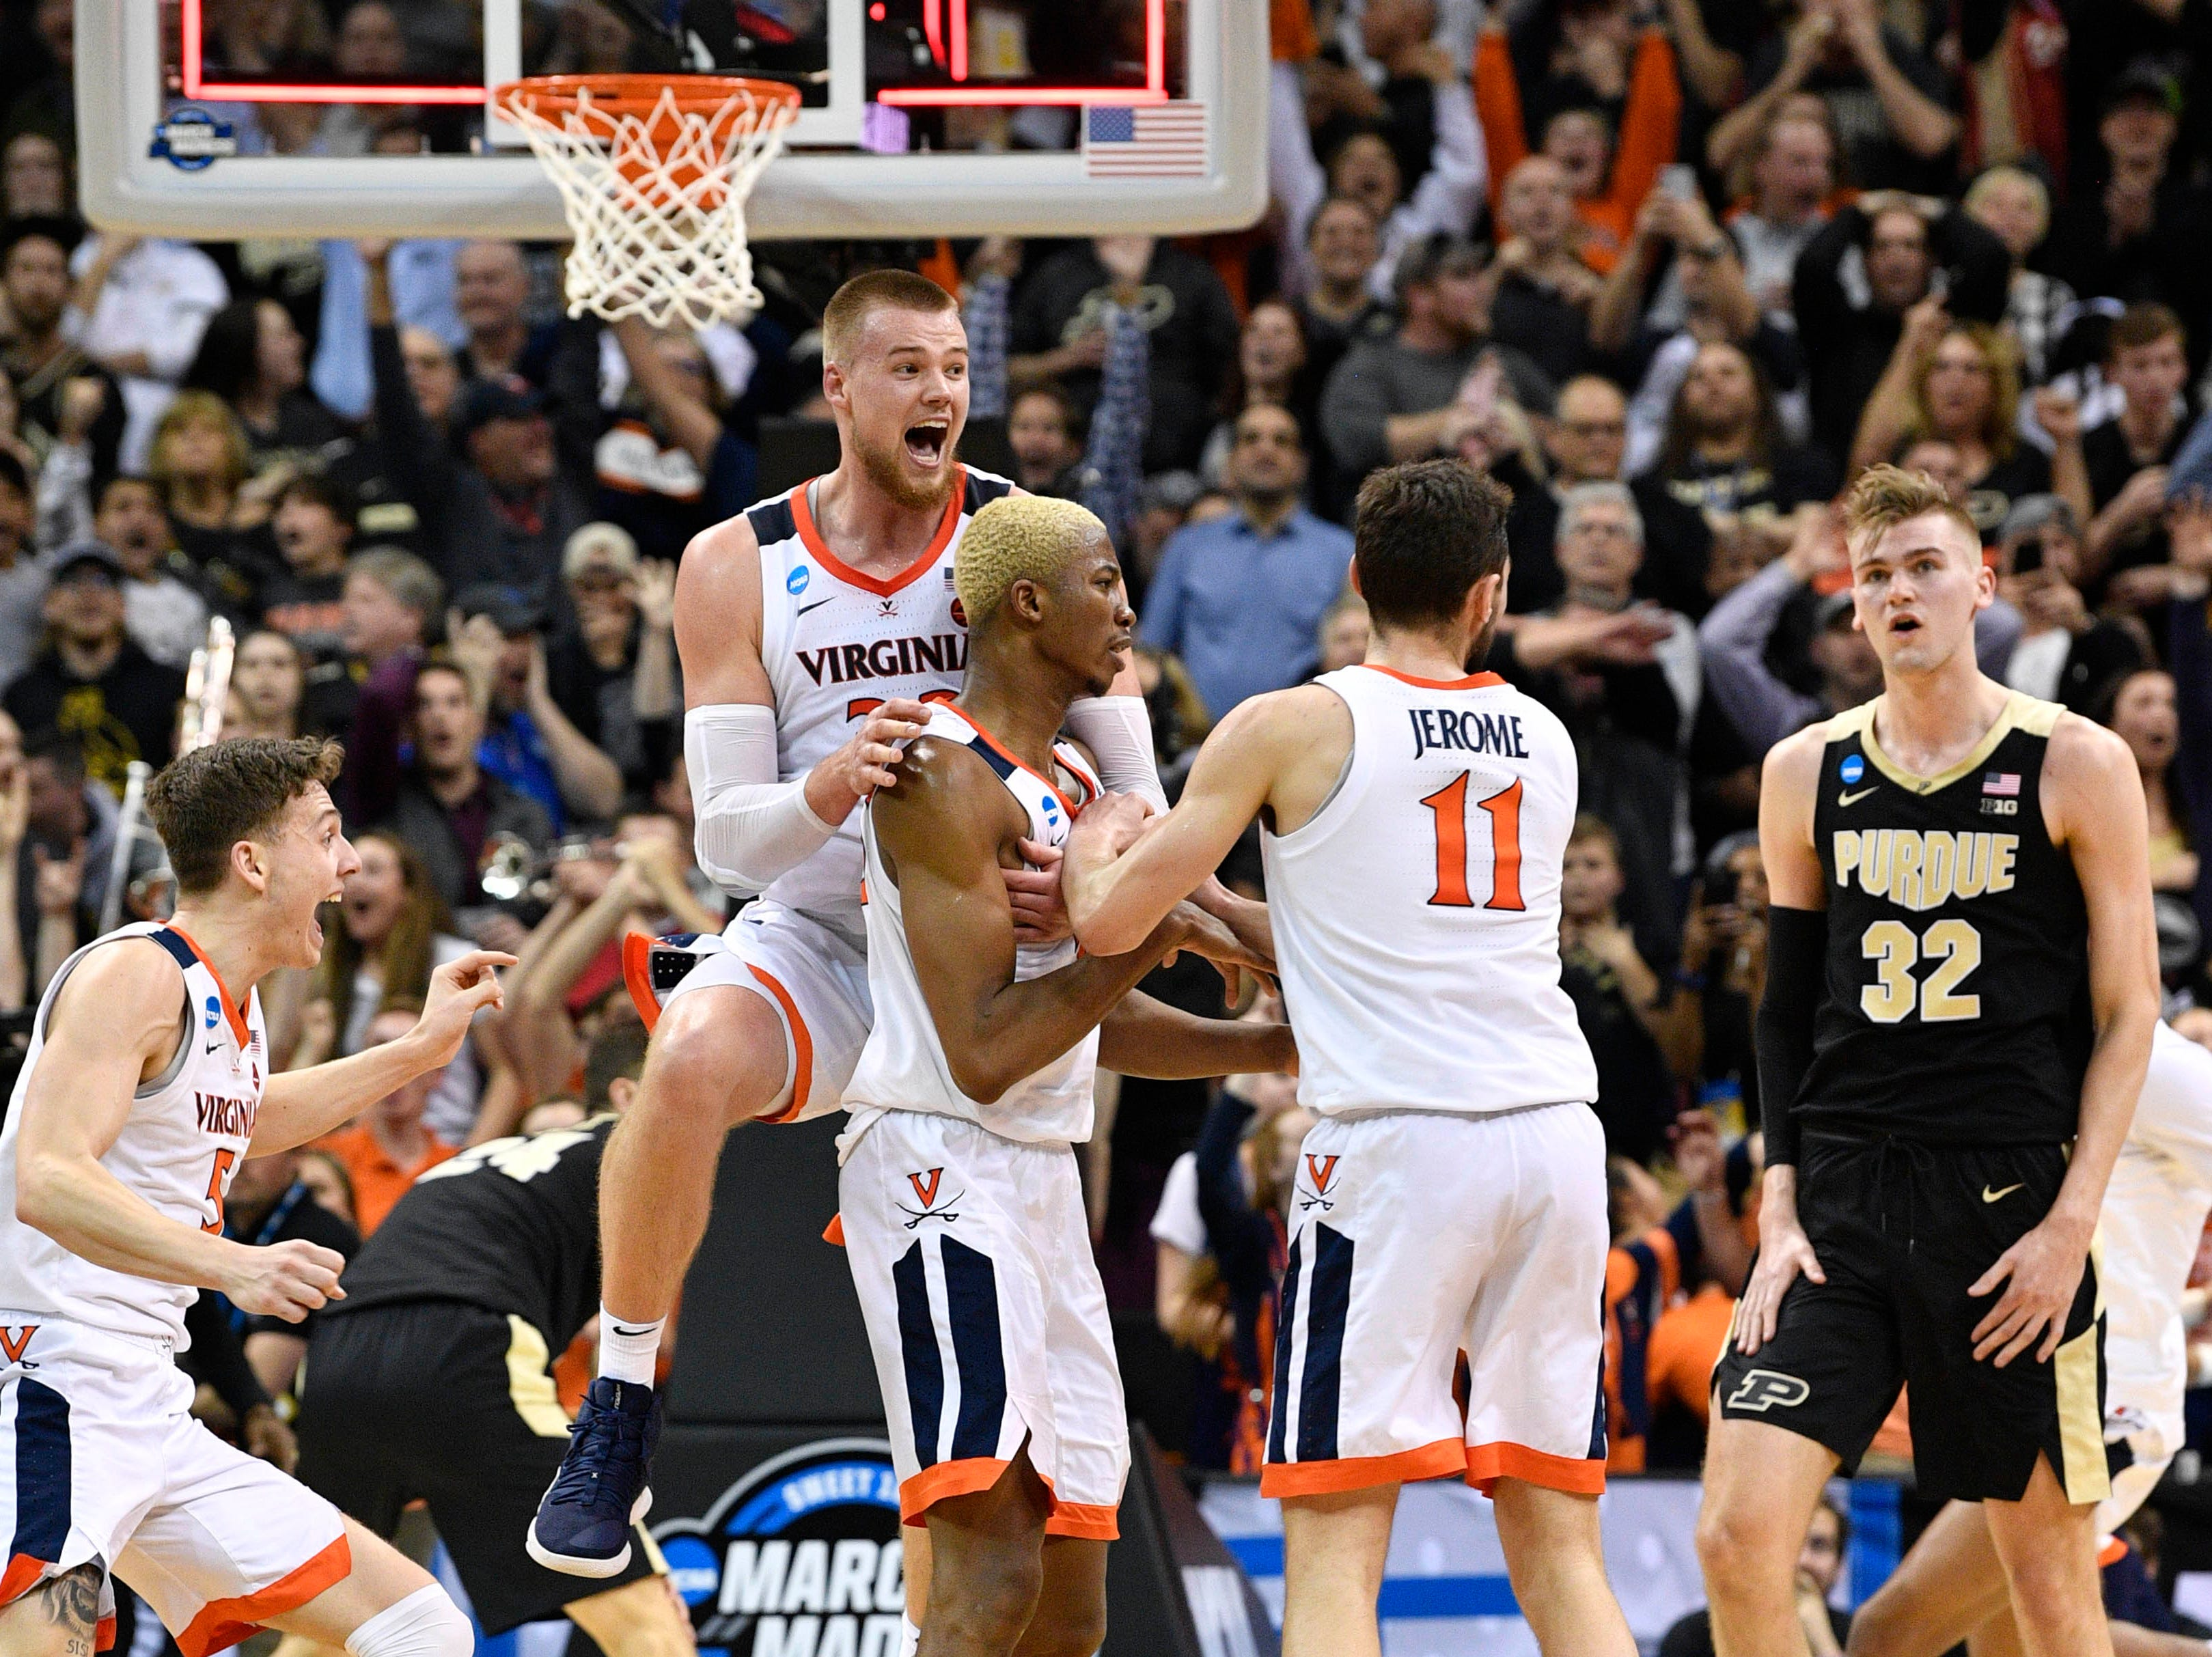 Elite Eight: Virginia Cavaliers forward Mamadi Diakite is mobbed by his teammates after beating the buzzer to tie the game and force OT. UVA would win in the extra session to advance to the Final Four for the first time since 1984.